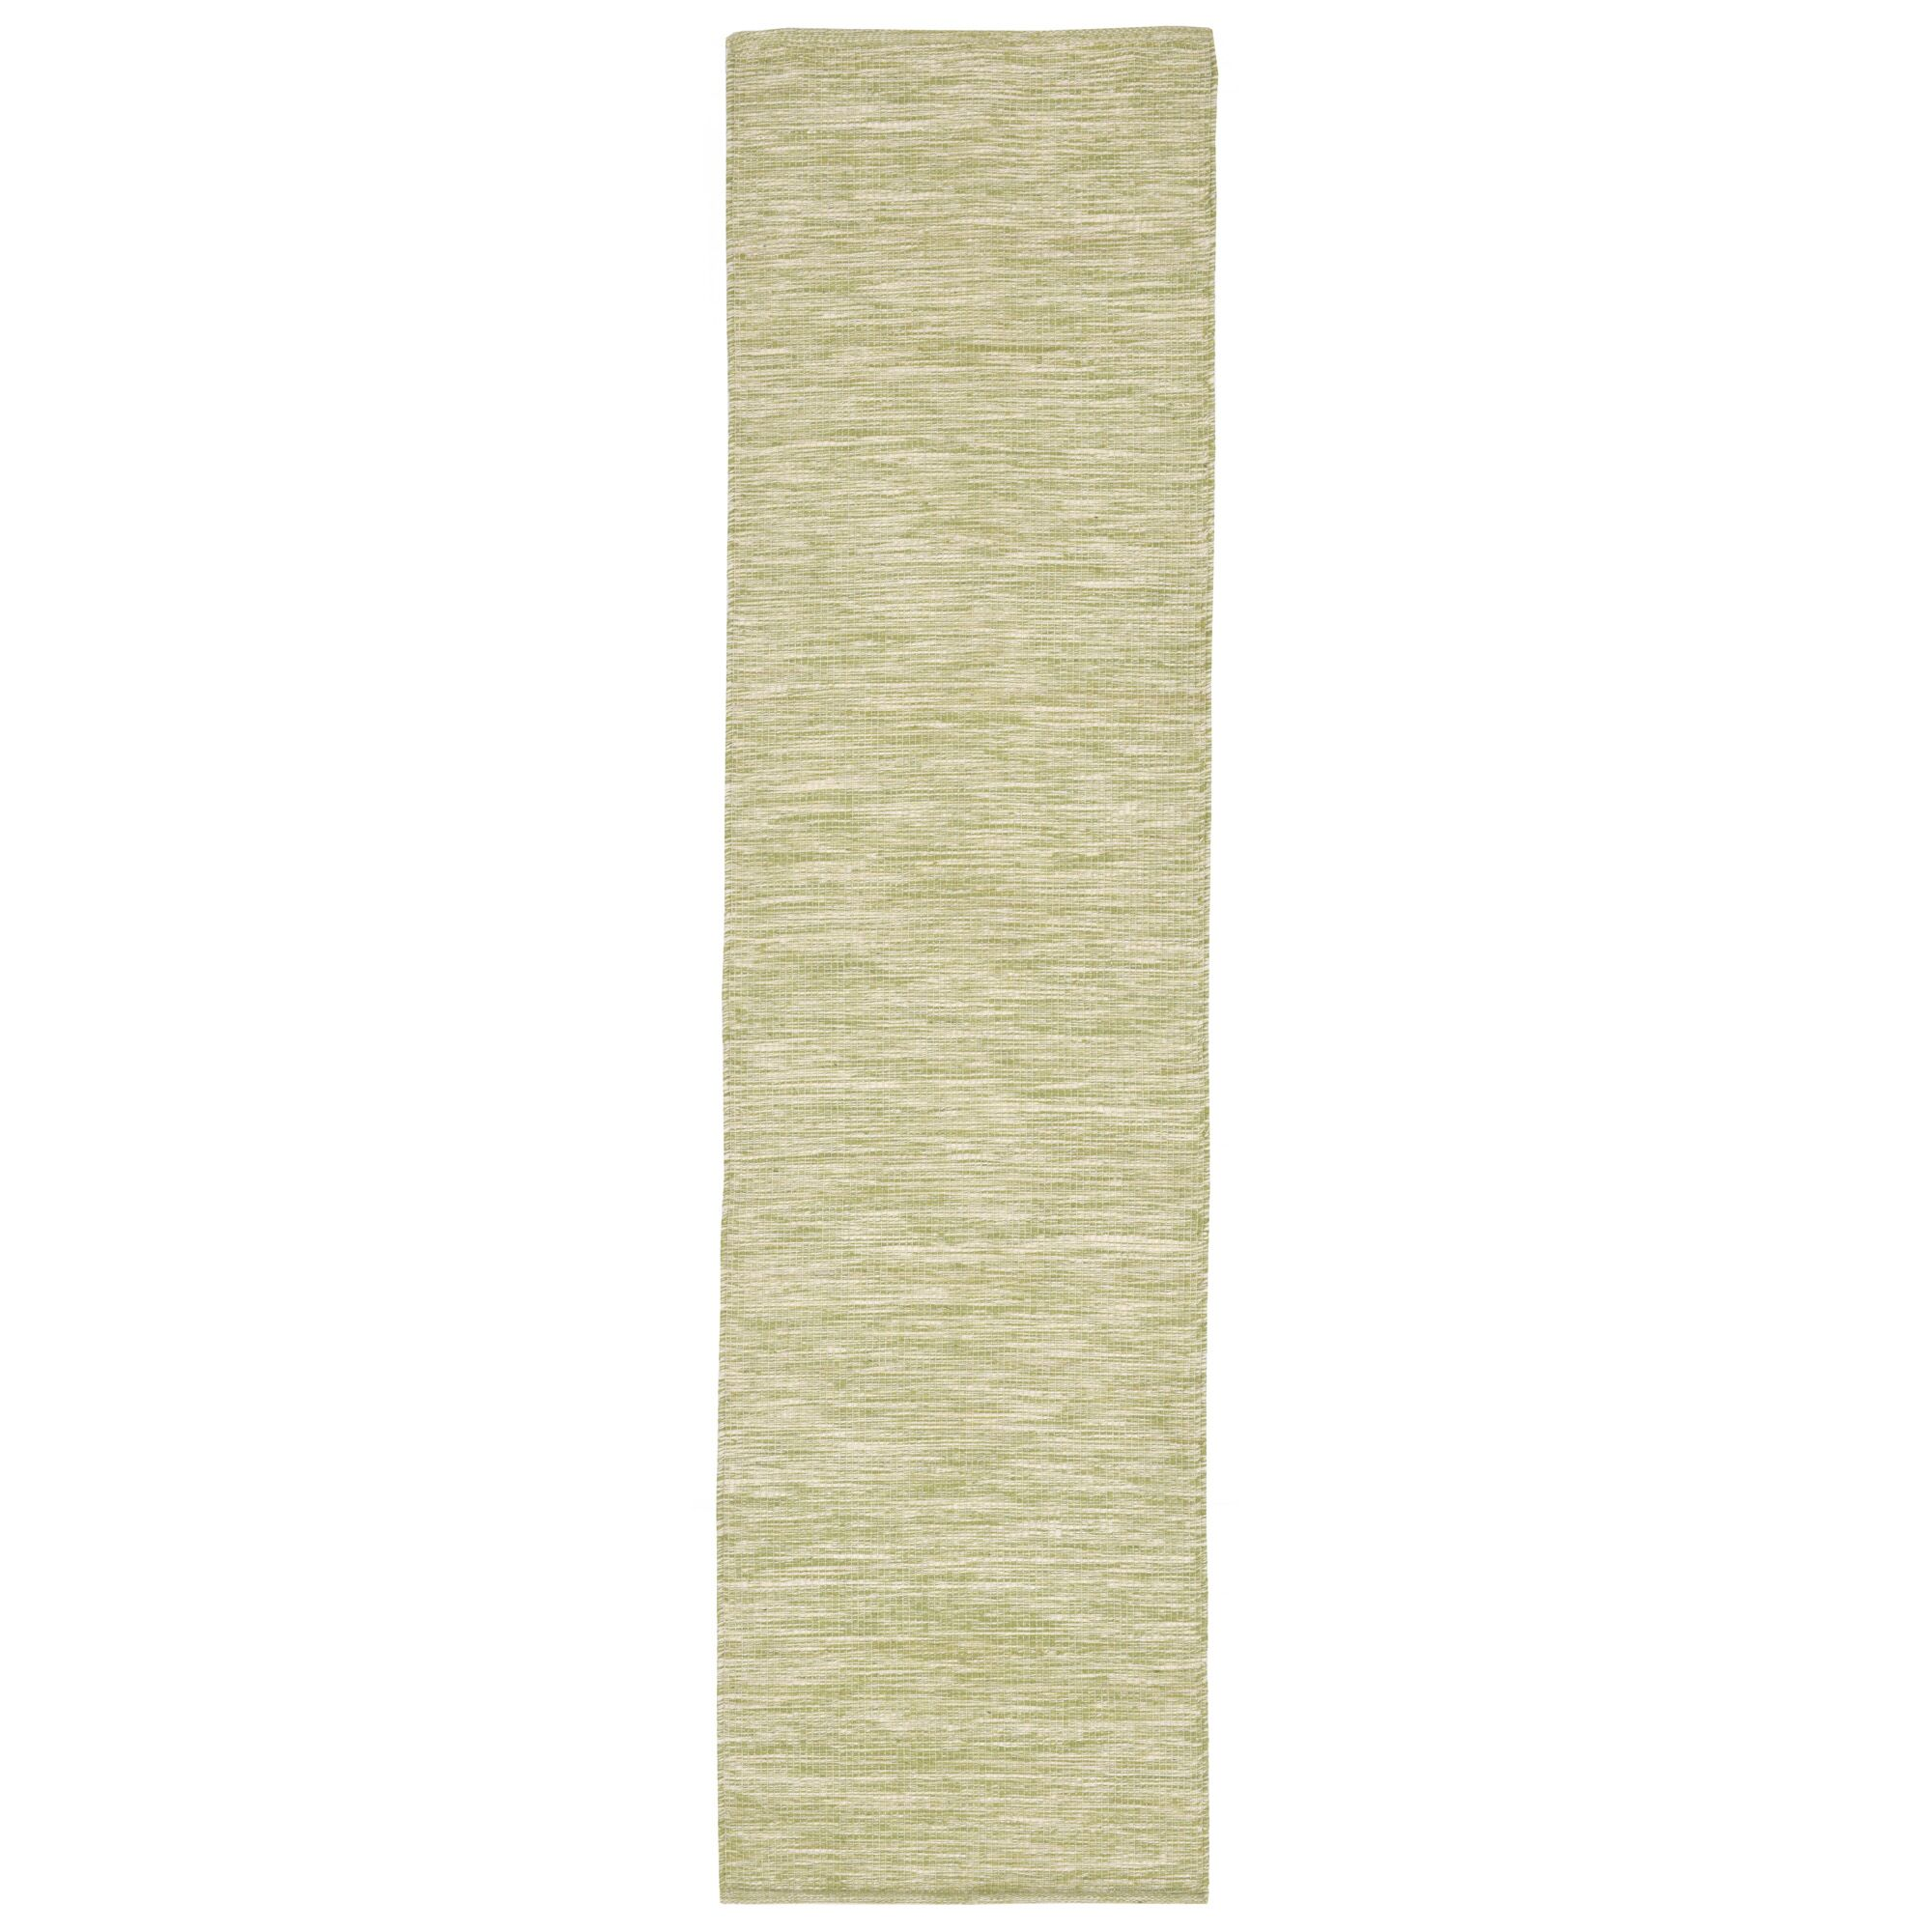 Boerner Hand-Woven Green Indoor/Outdoor Area Rug Rug Size: Runner 2' x 8'